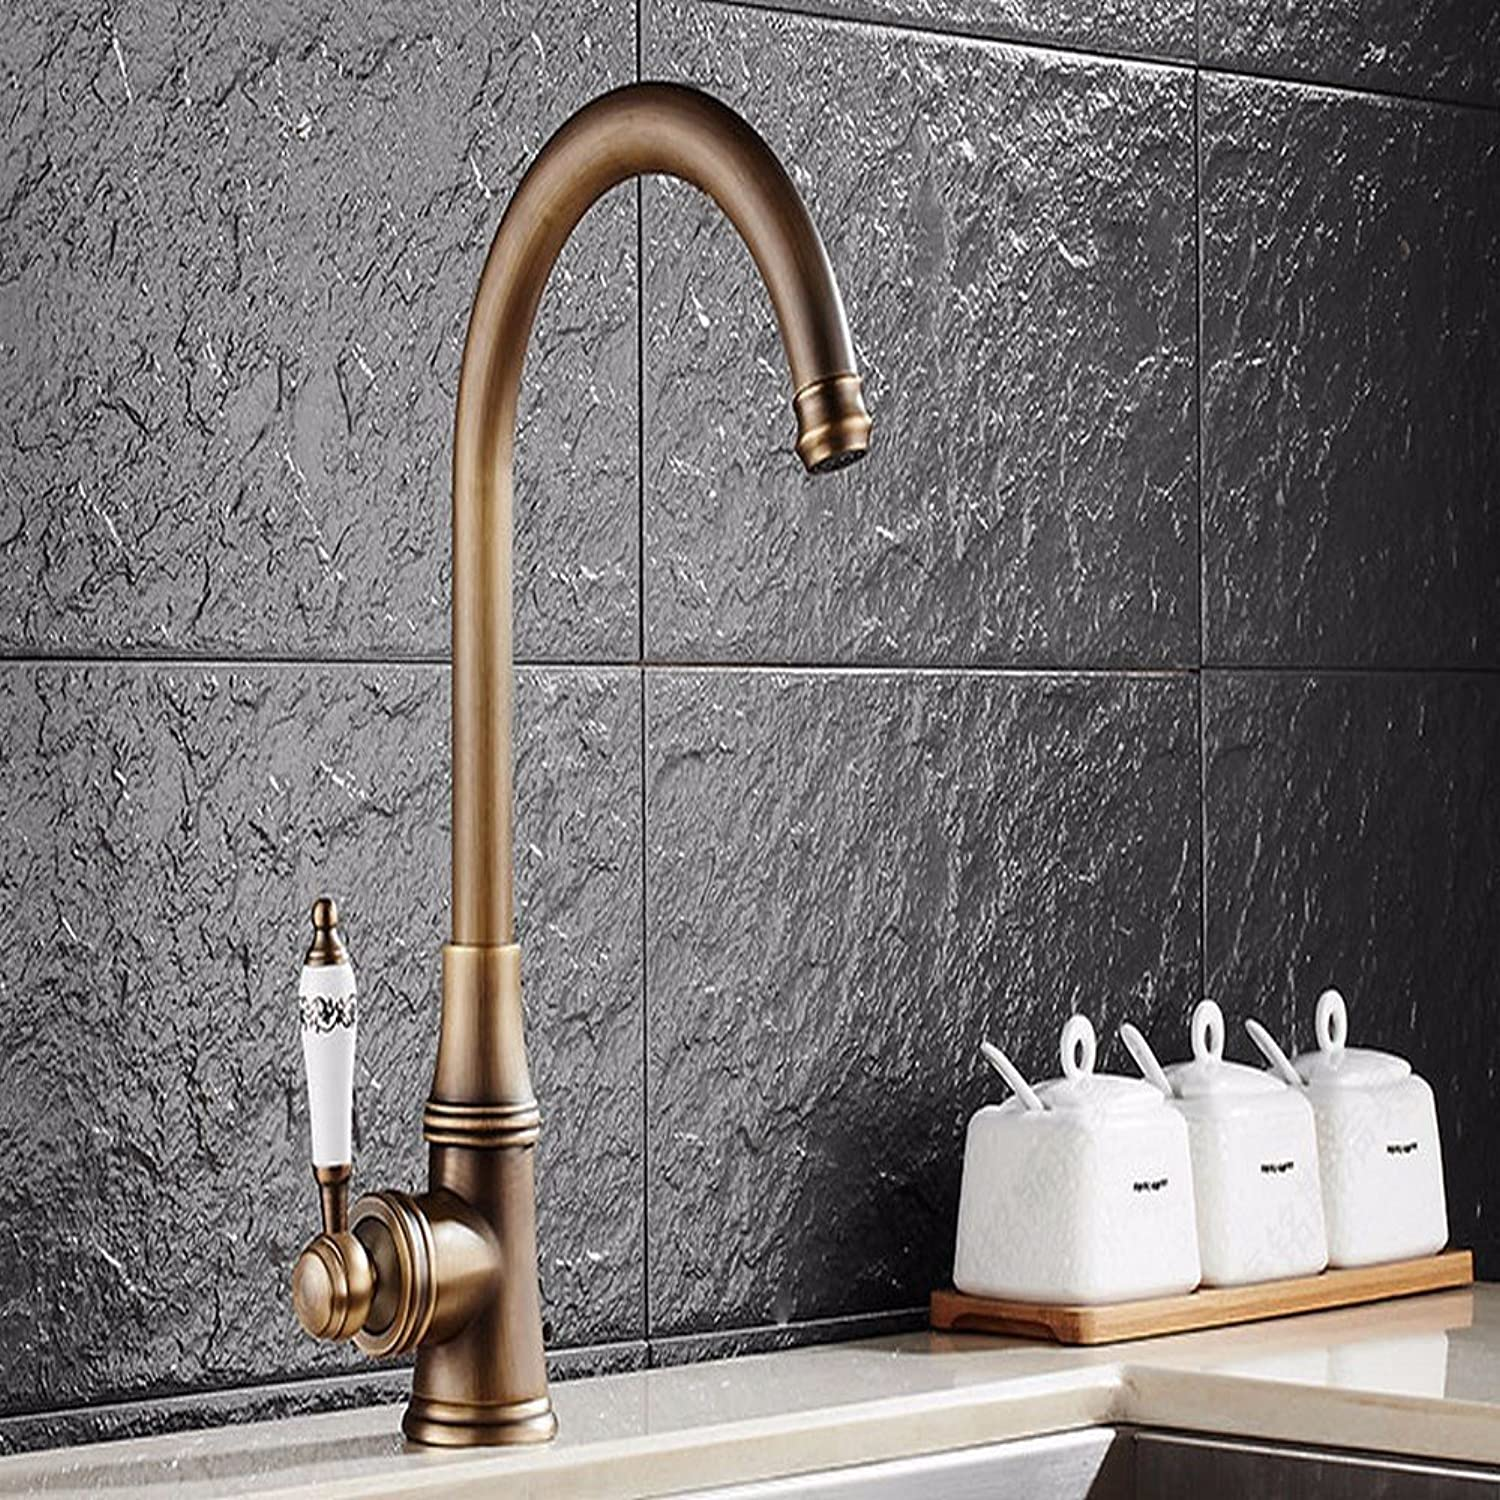 SHsm Antique Single Single Hole Hot And Cold Water Kitchen Faucet Swivel Head